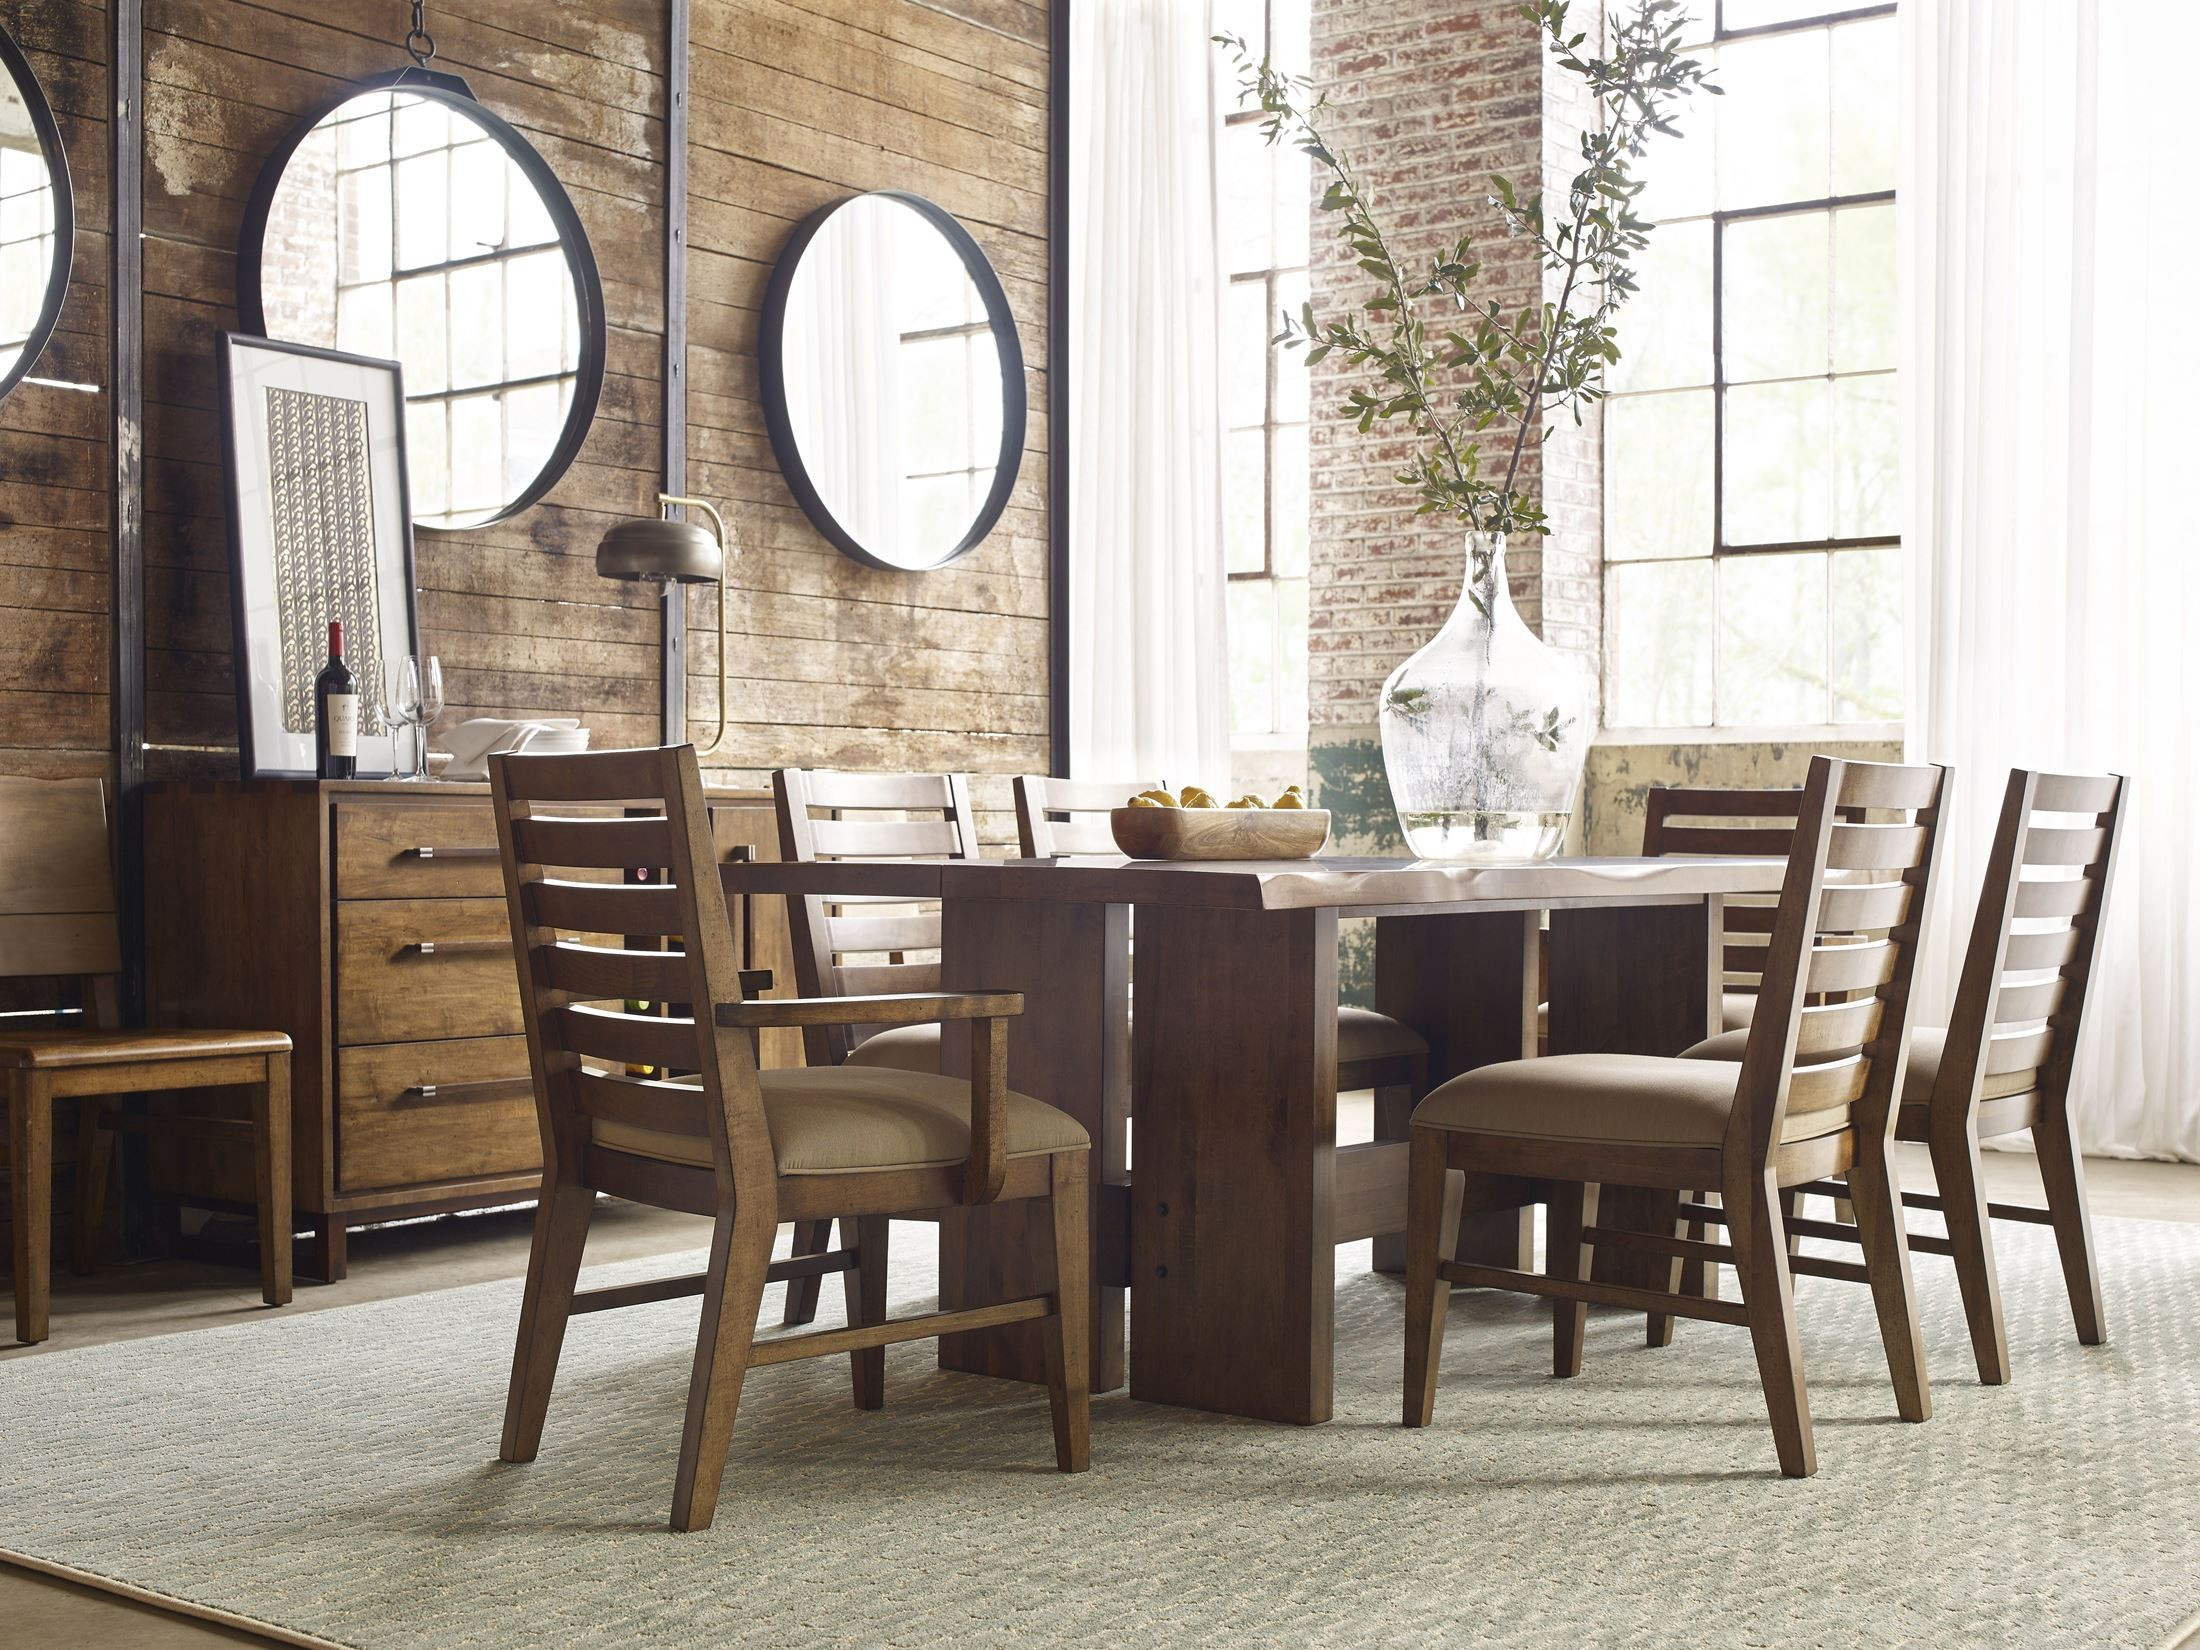 Attirant Traverse Brown Cutler Dining Room Set From Kincaid Furniture | Coleman  Furniture